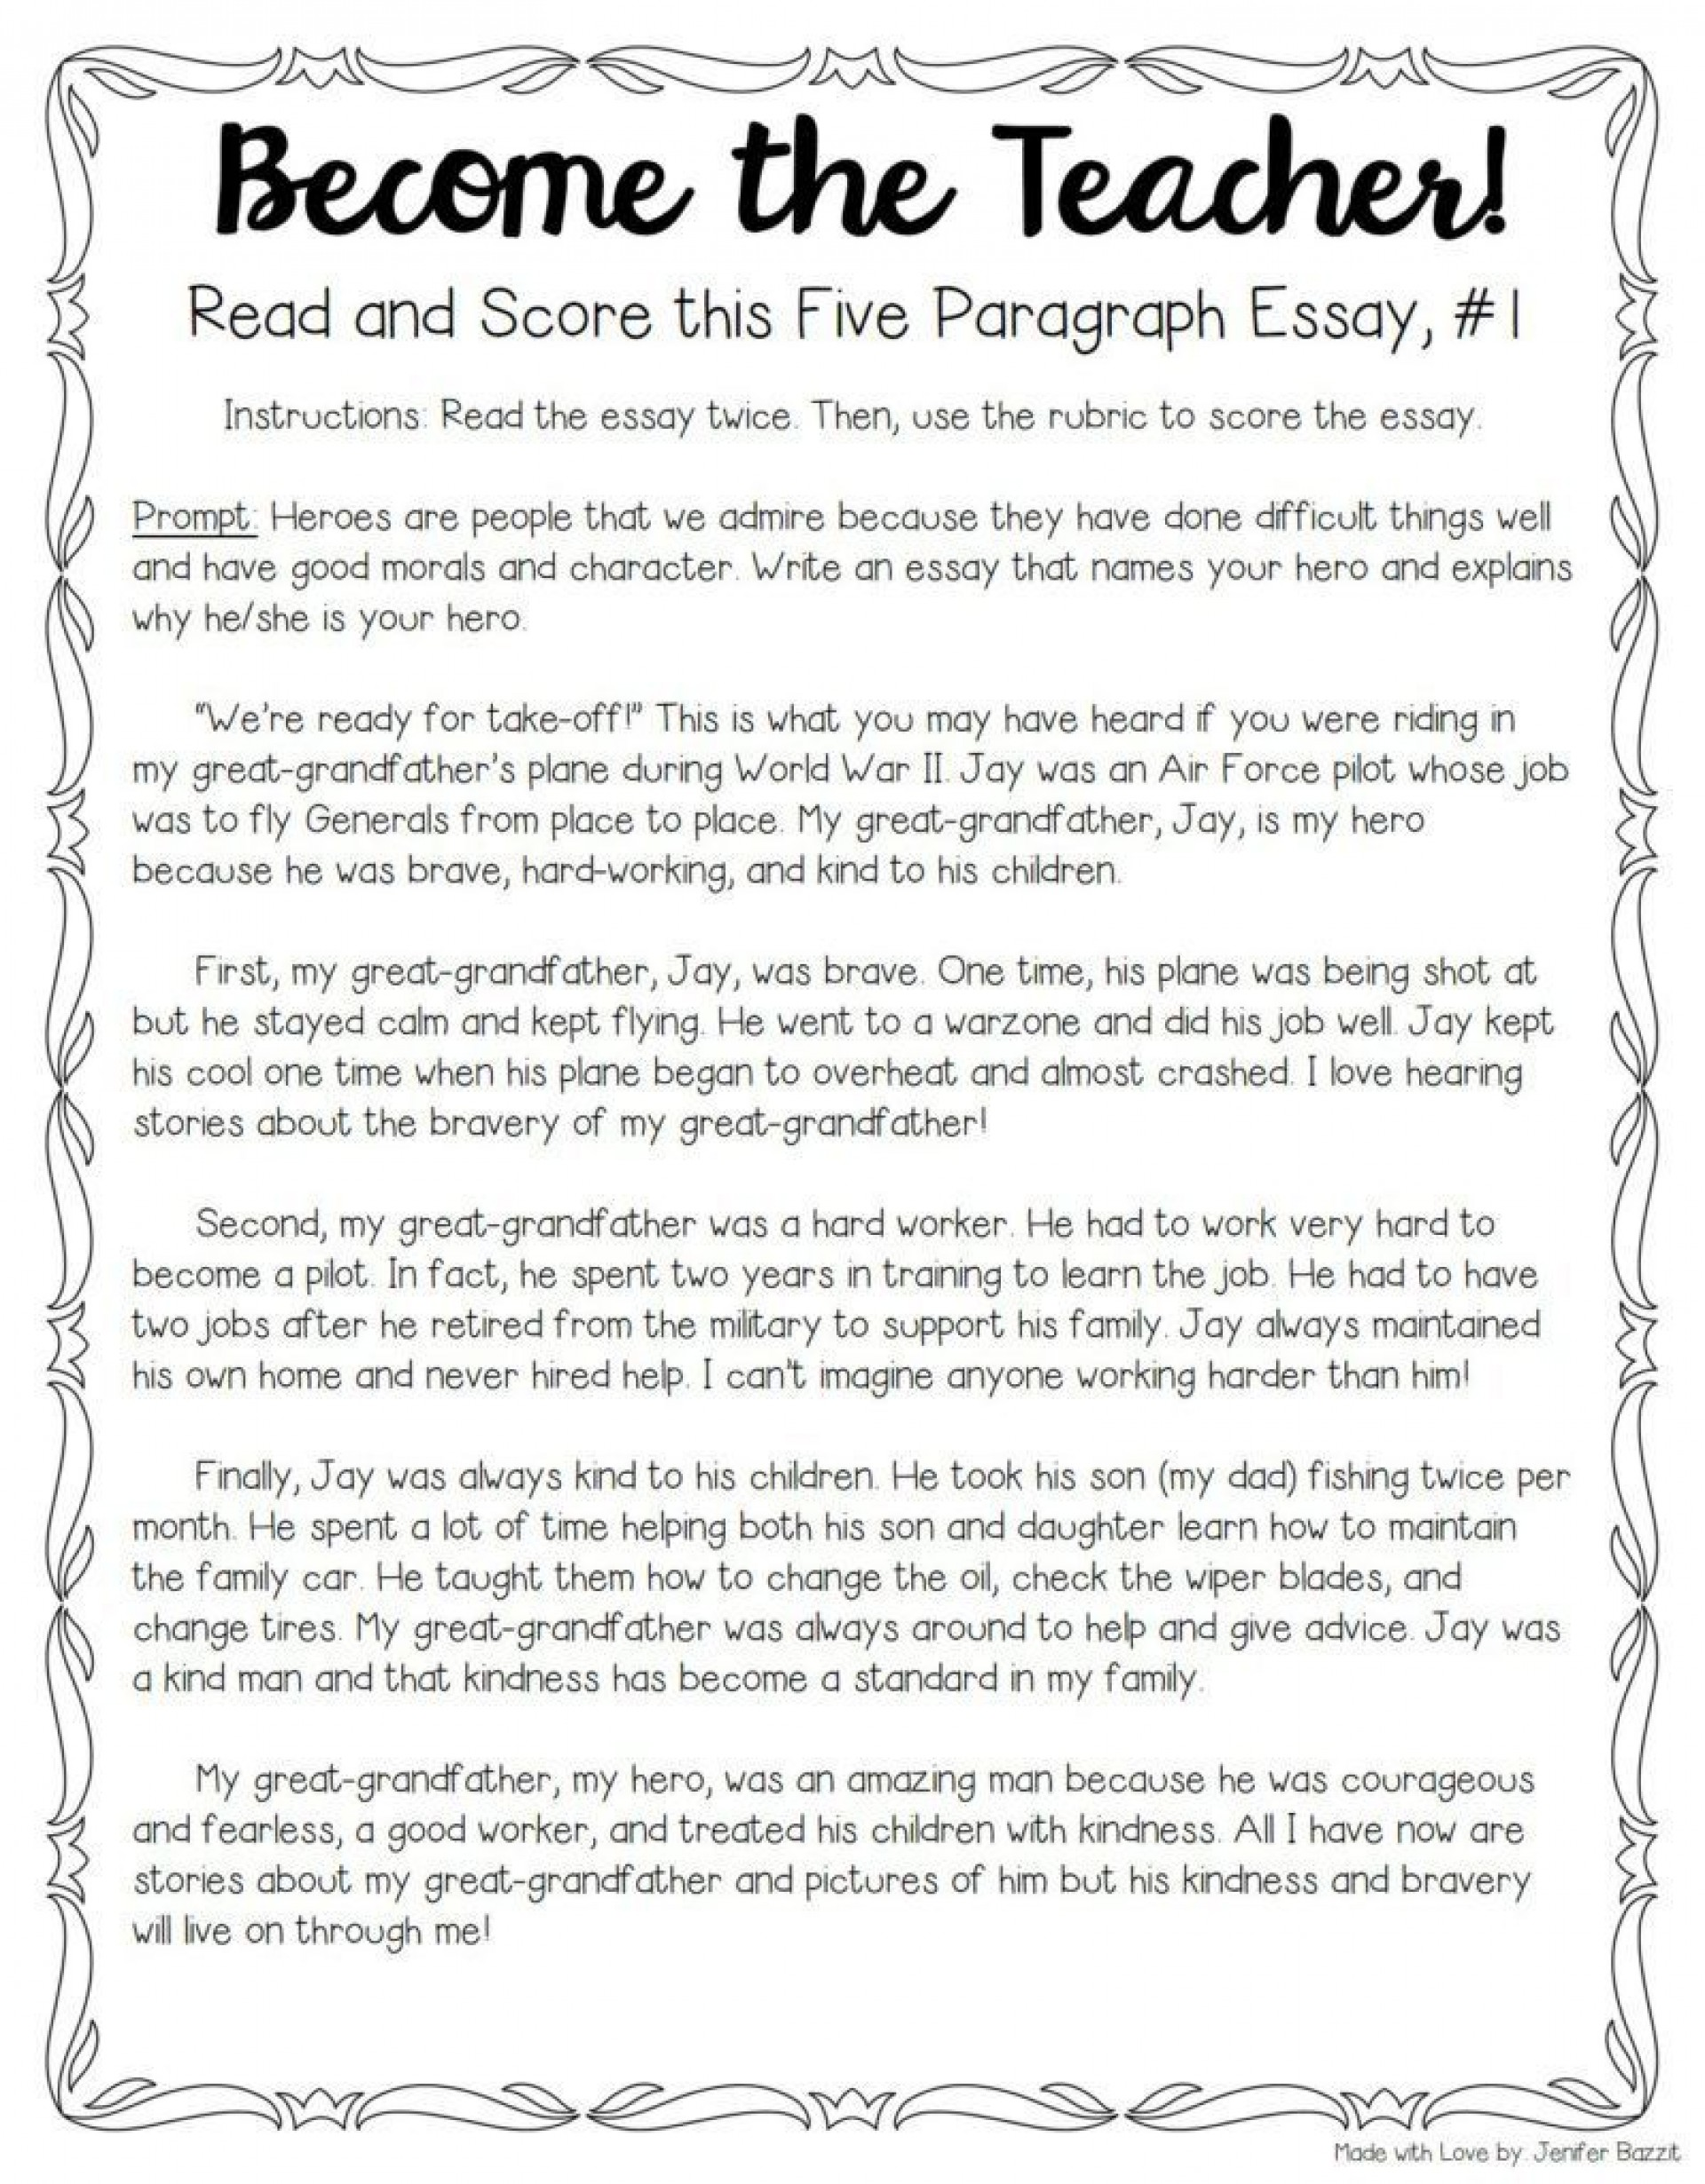 001 Essay Example Teaching Unique Writing 5th Grade To Esl Students High School 1920